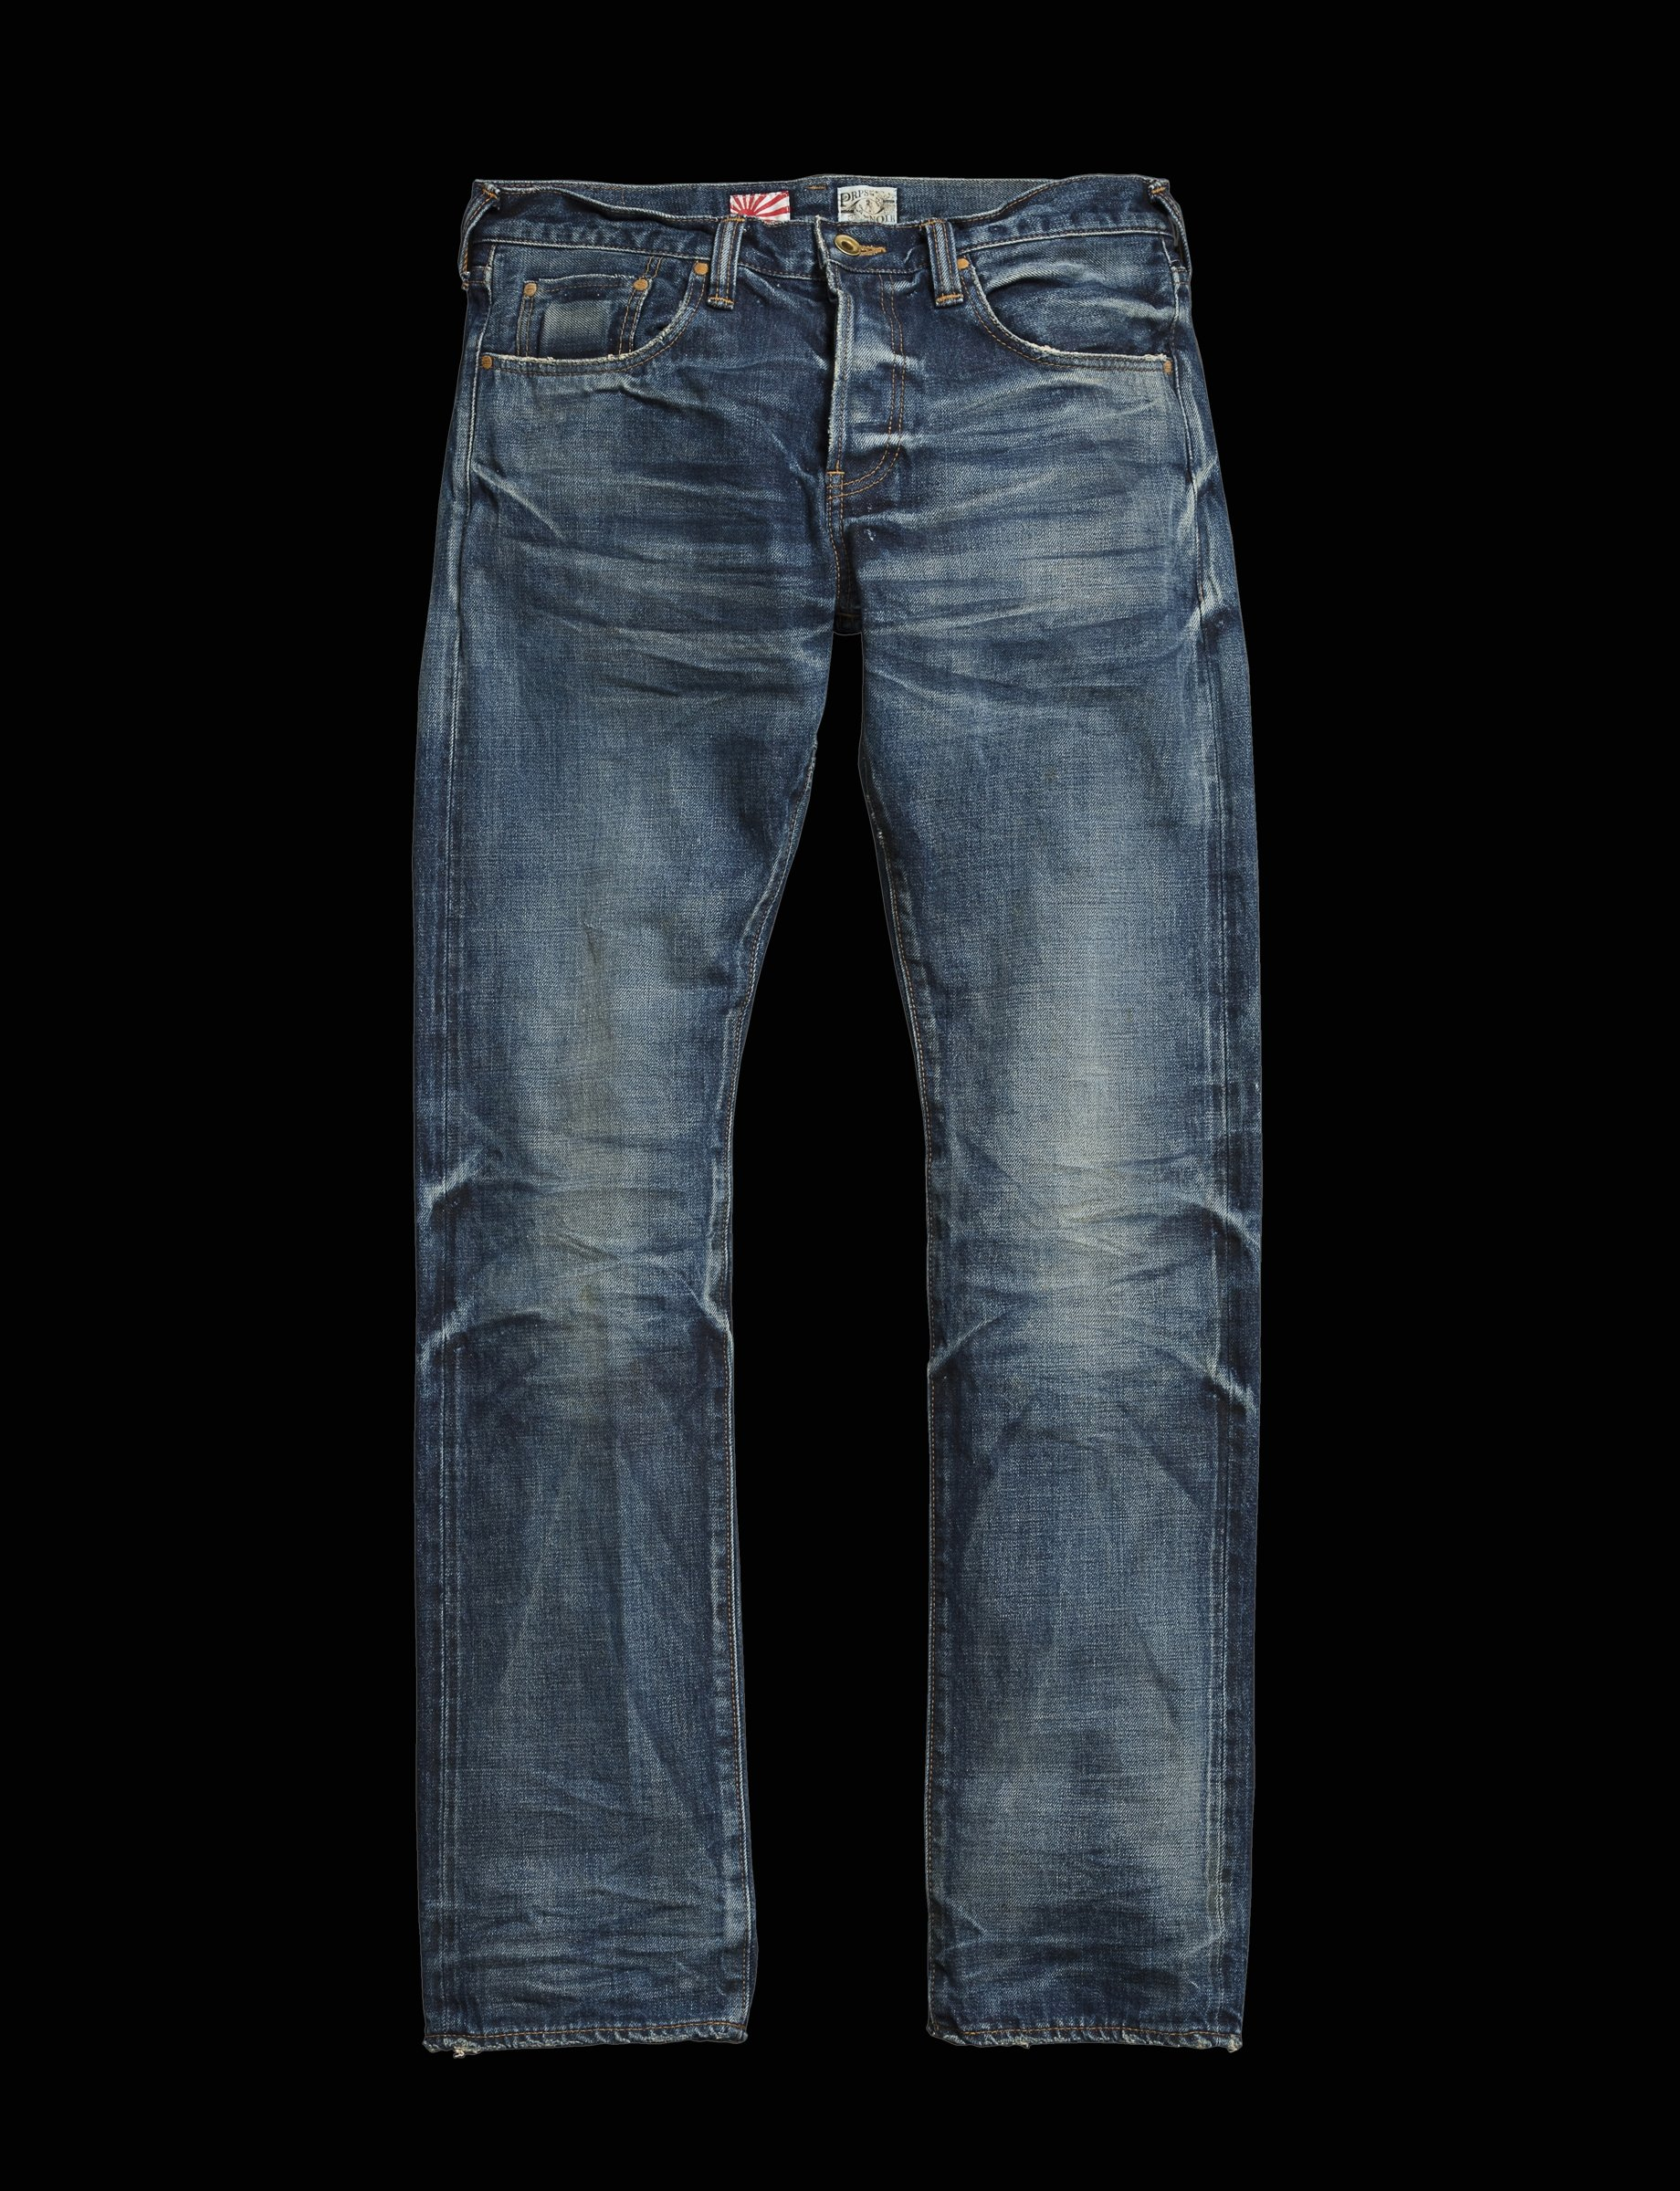 0ac3d7be0 Description  Medium wash 5-pocket vintage replica denim jeans made with  100% cotton. Features a slight 3D wrinkle effect and finished with a  brushed copper ...